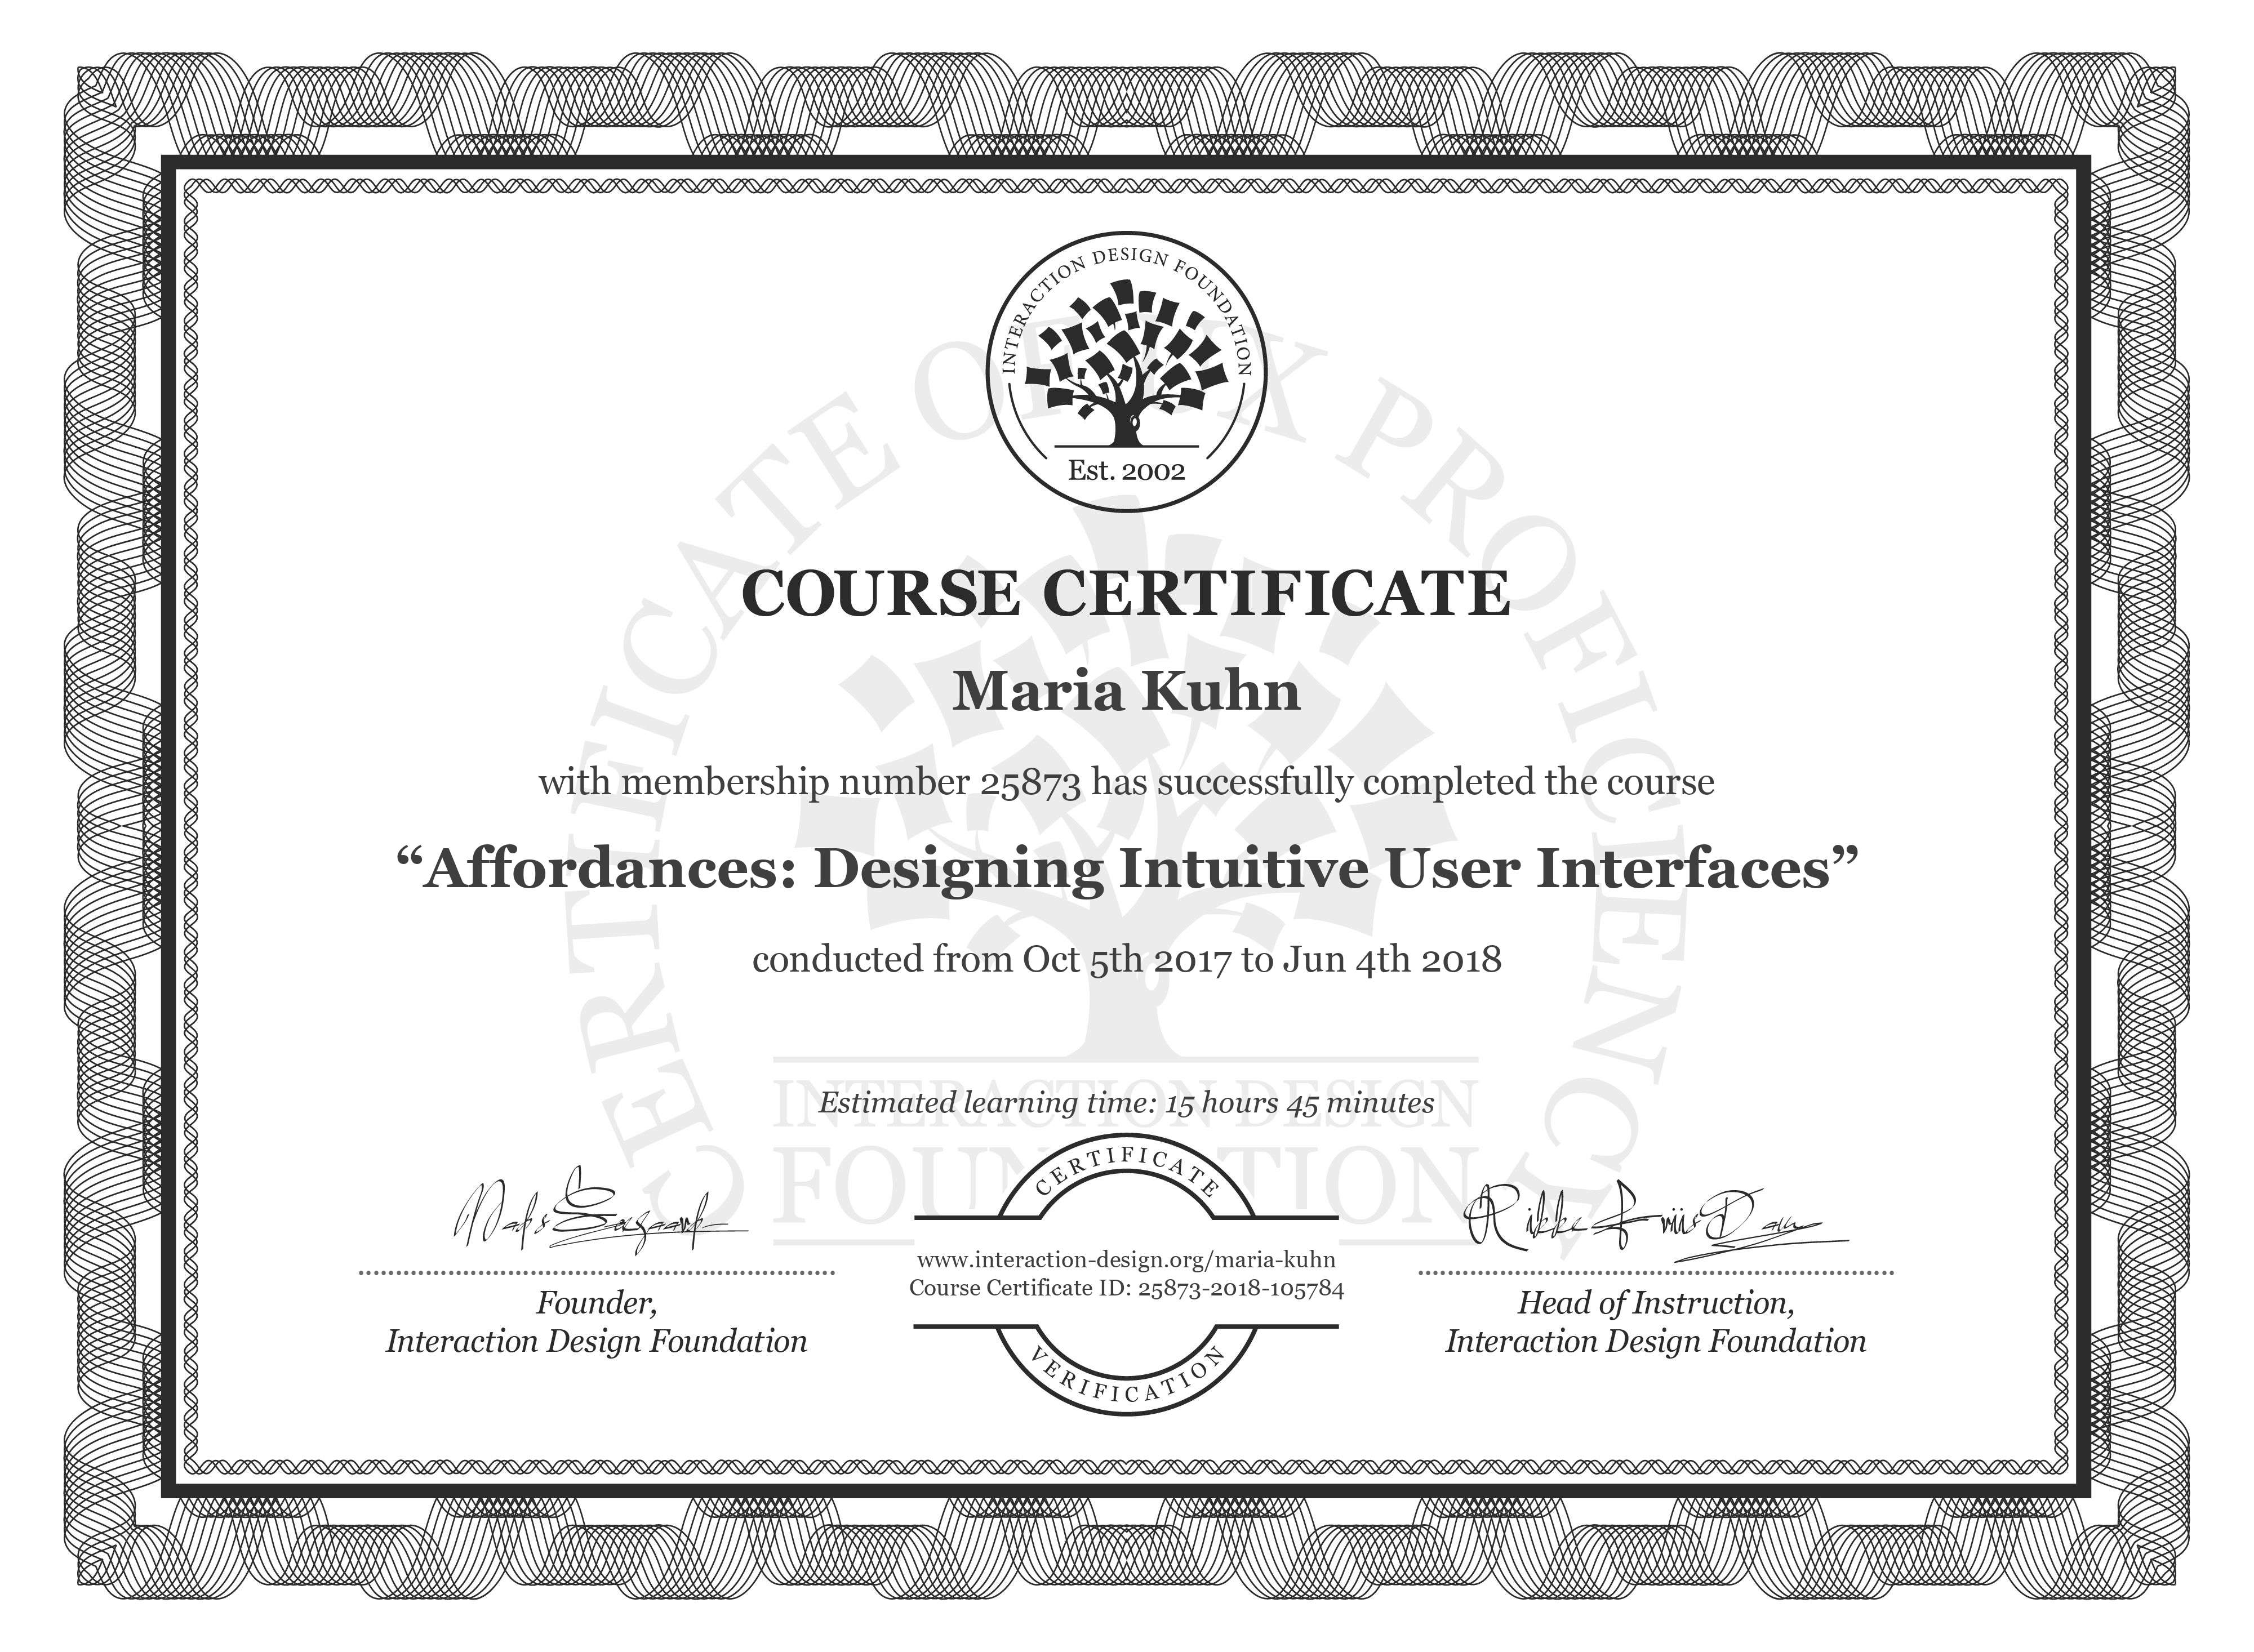 Maria Kuhn: Course Certificate - Affordances: Designing Intuitive User Interfaces